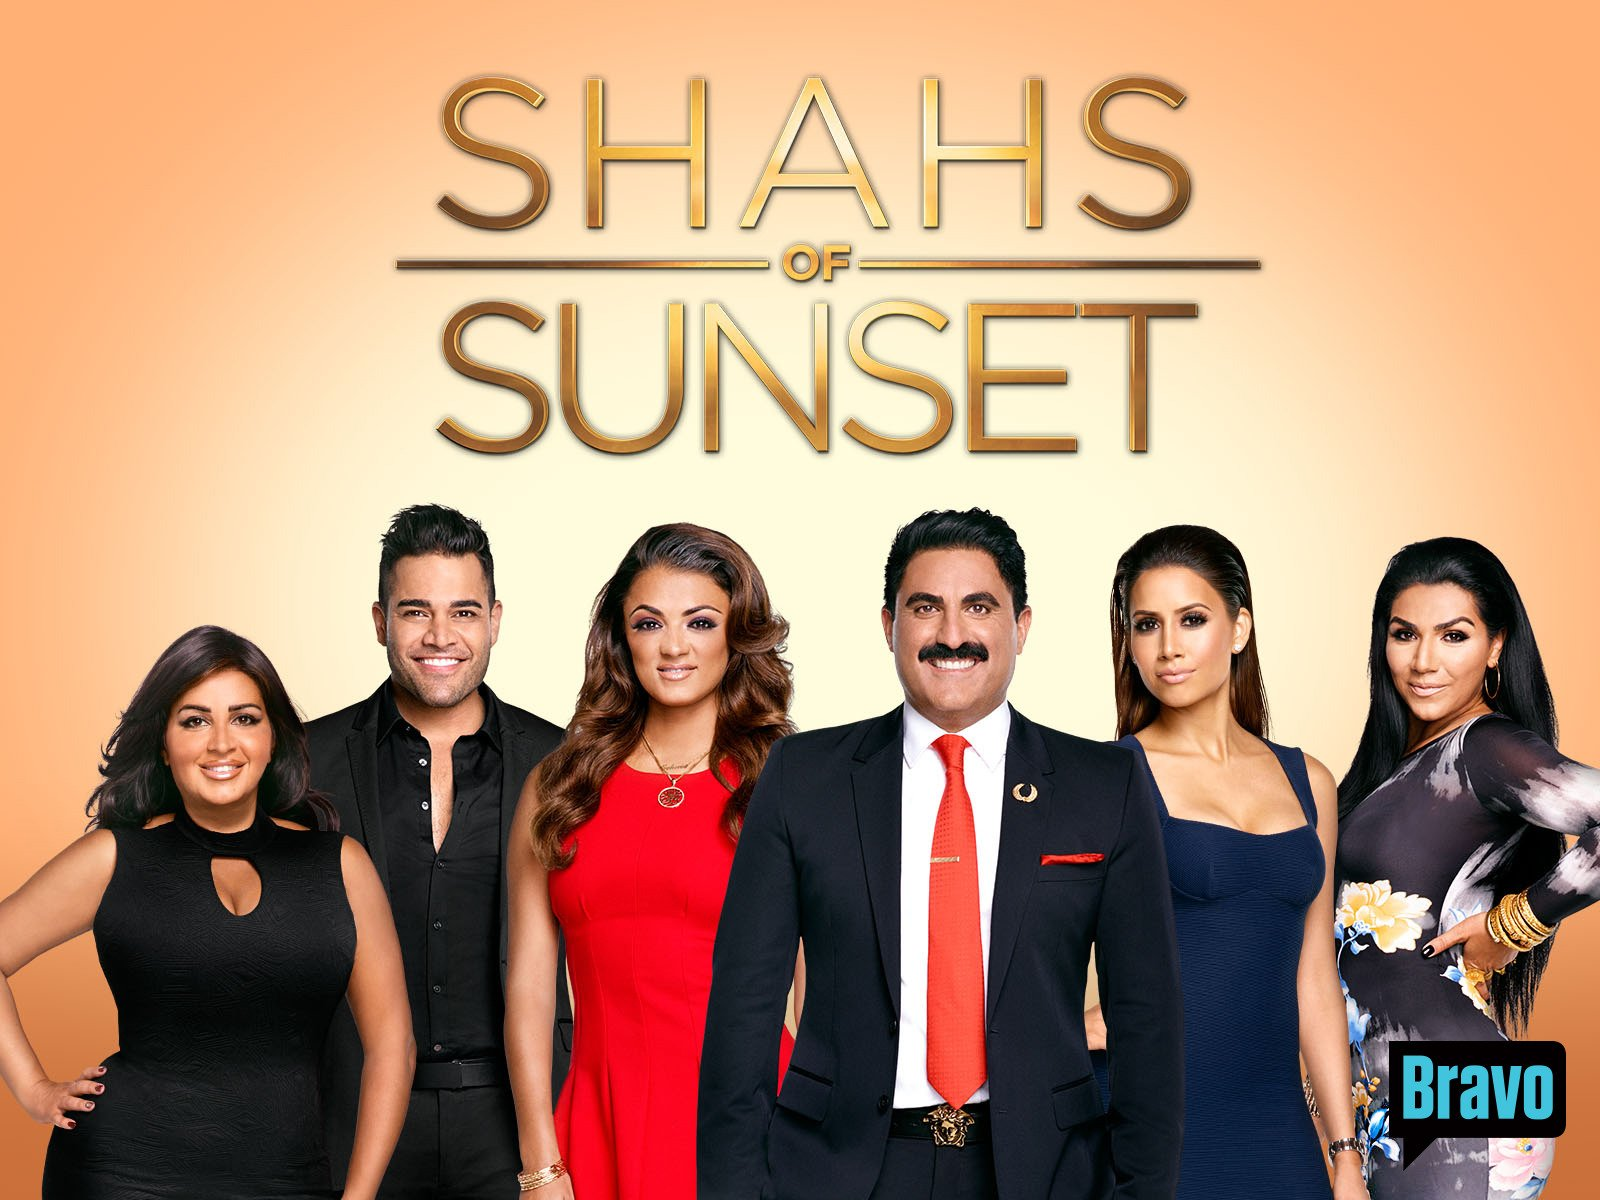 Shahs Of Sunset - Playing with fire